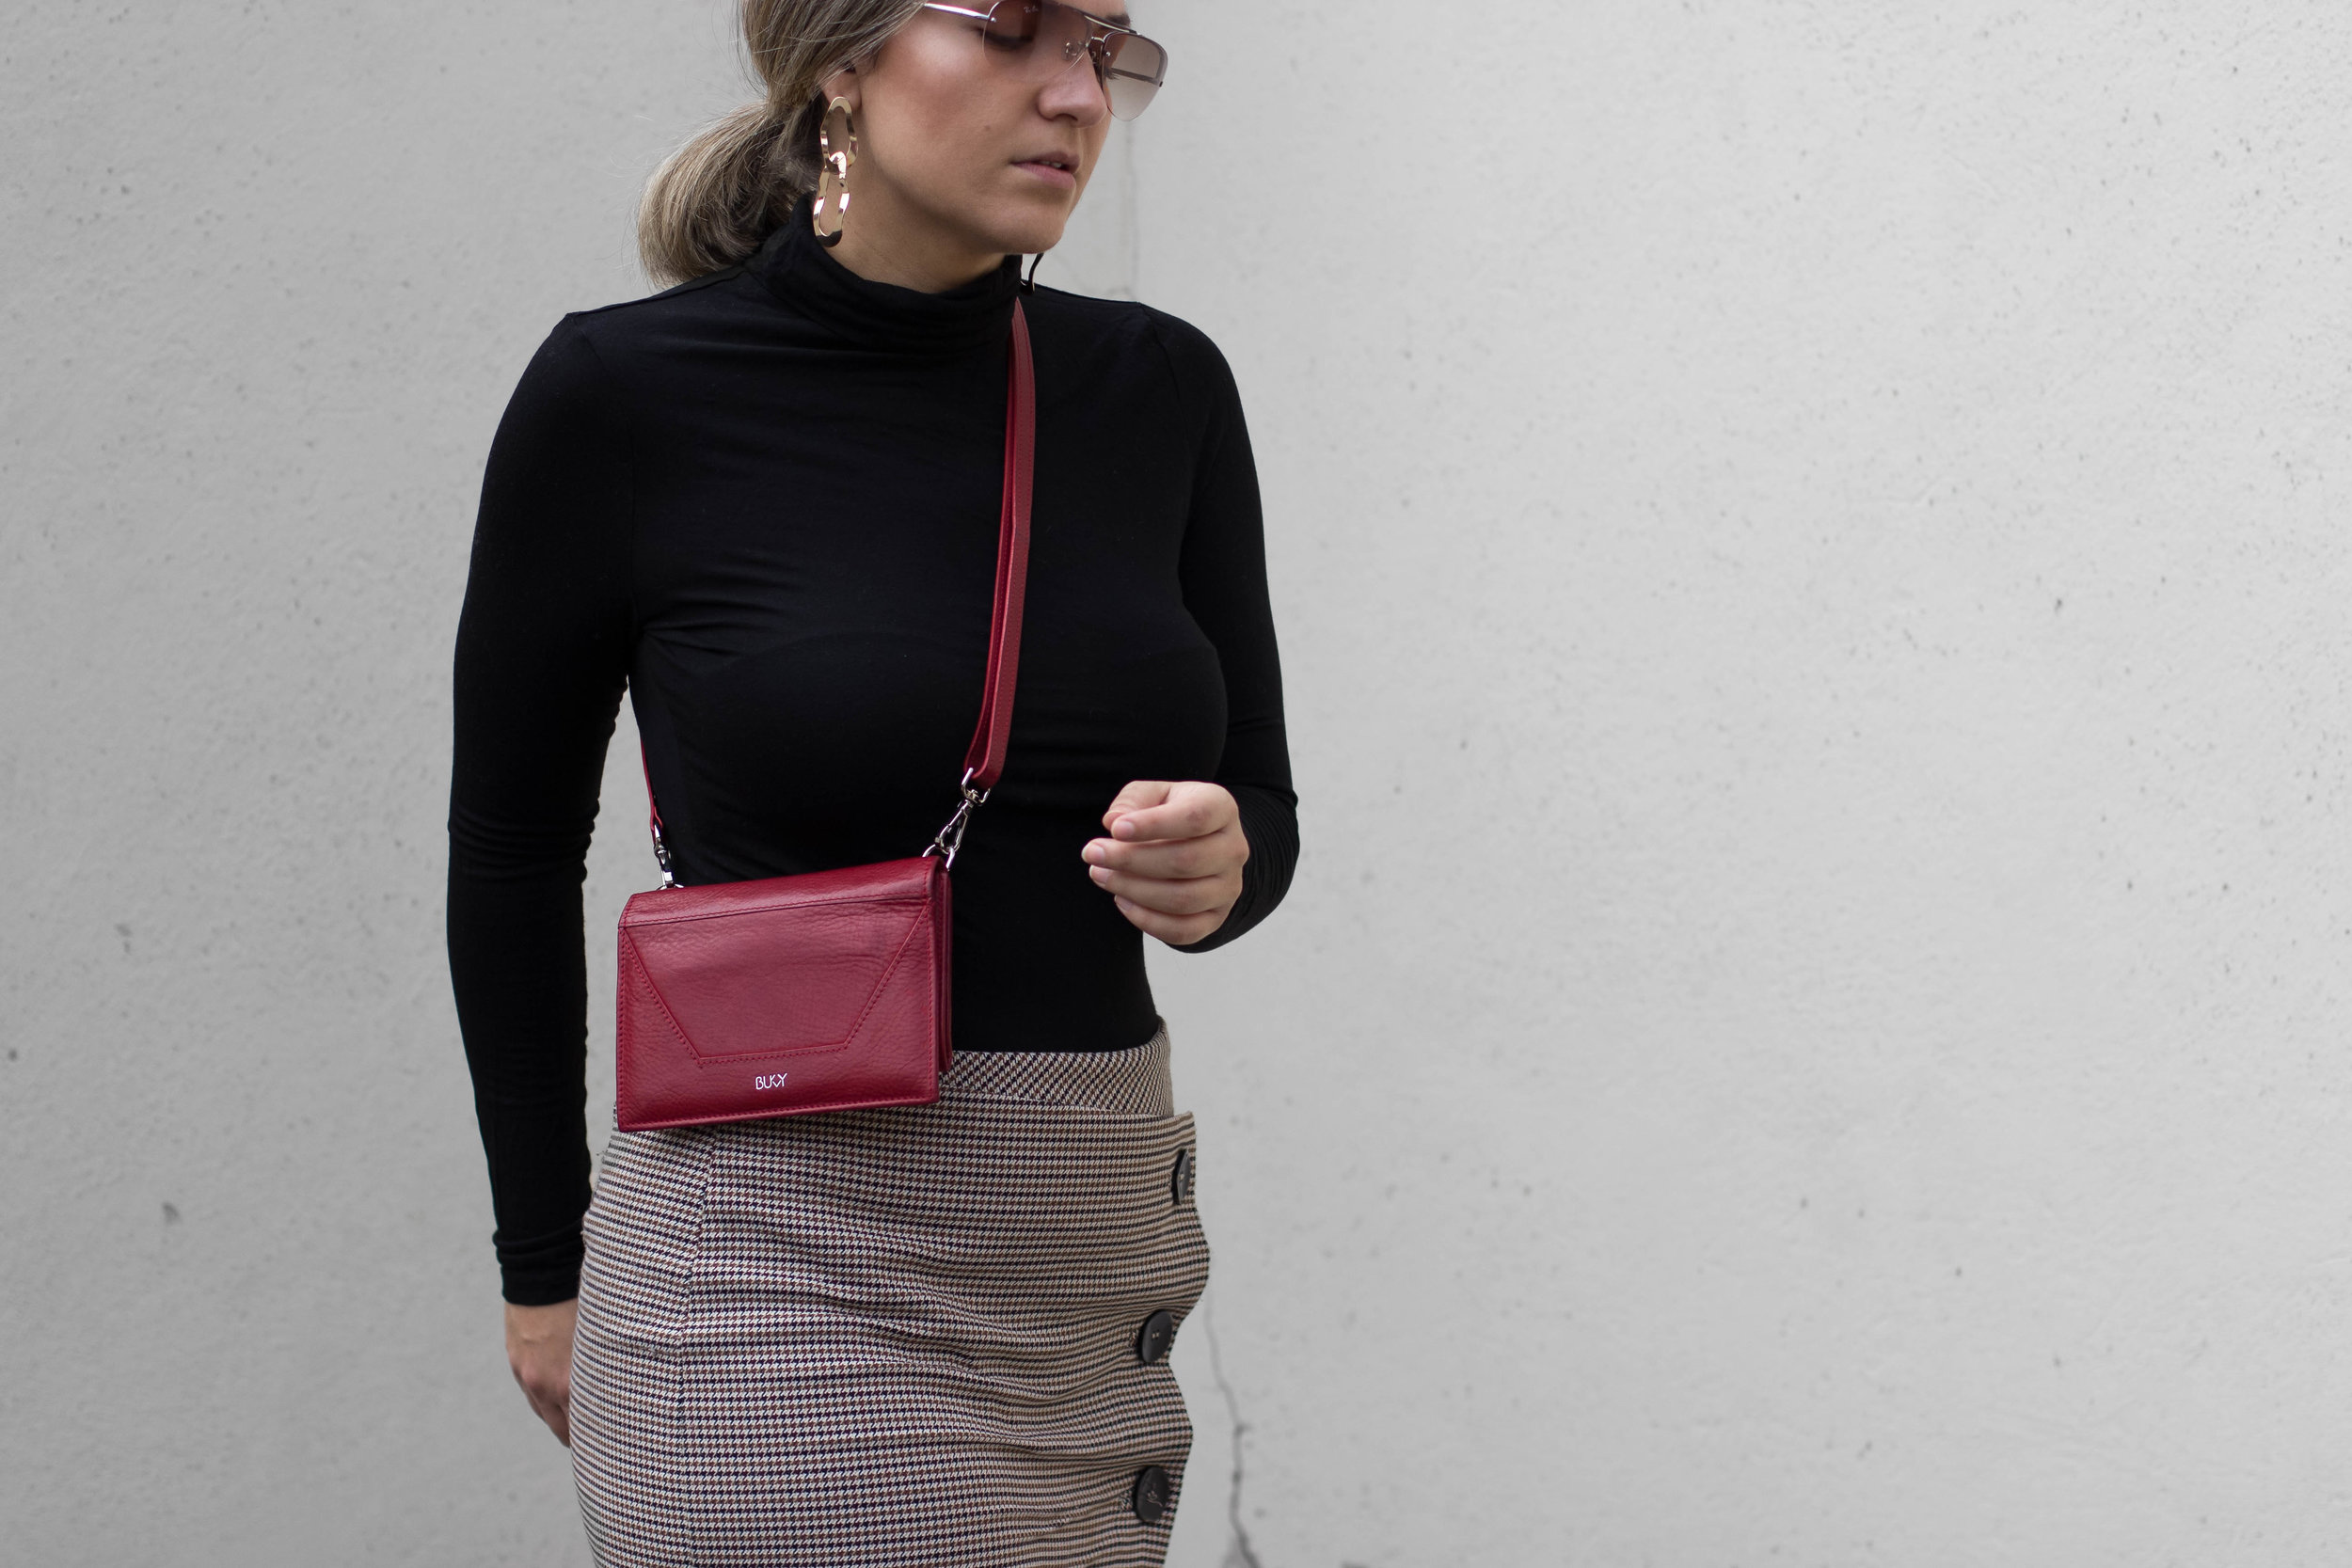 70strends-aboutthatlook-streetstyle-fashion-70strends-bukvy